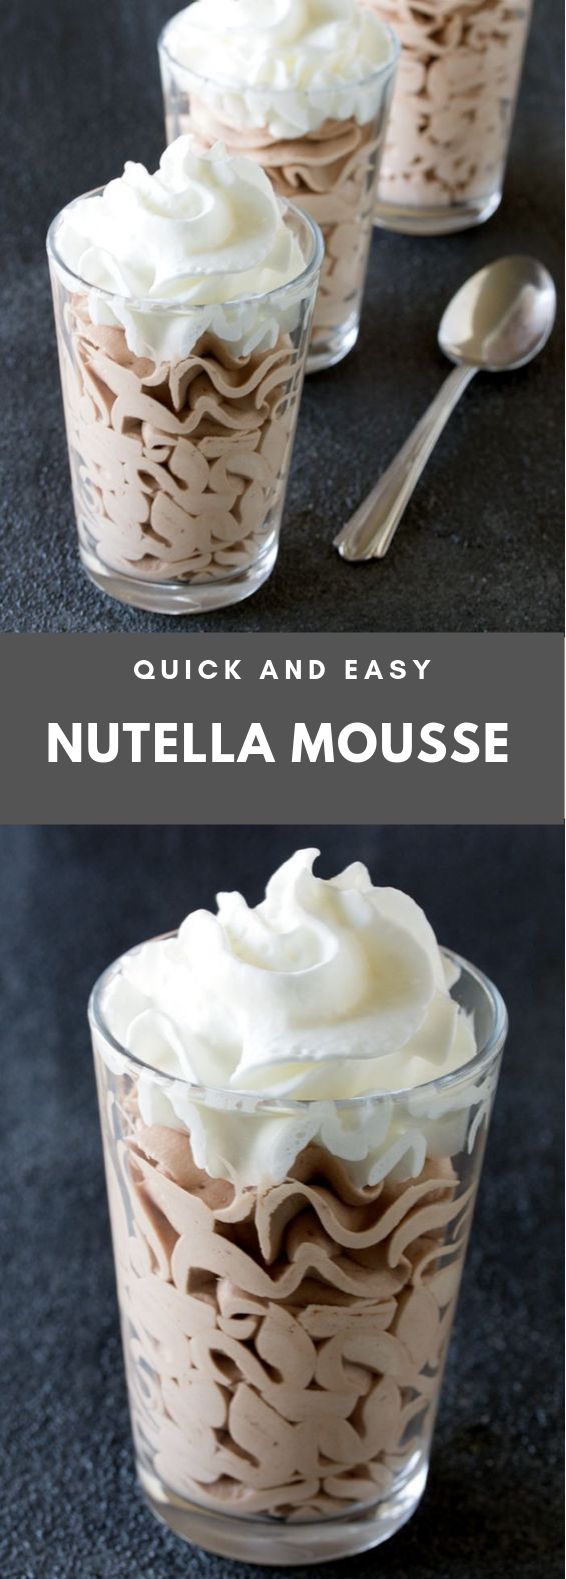 QUICK AND EASY NUTELLA MOUSSE #Dessert #Nutella